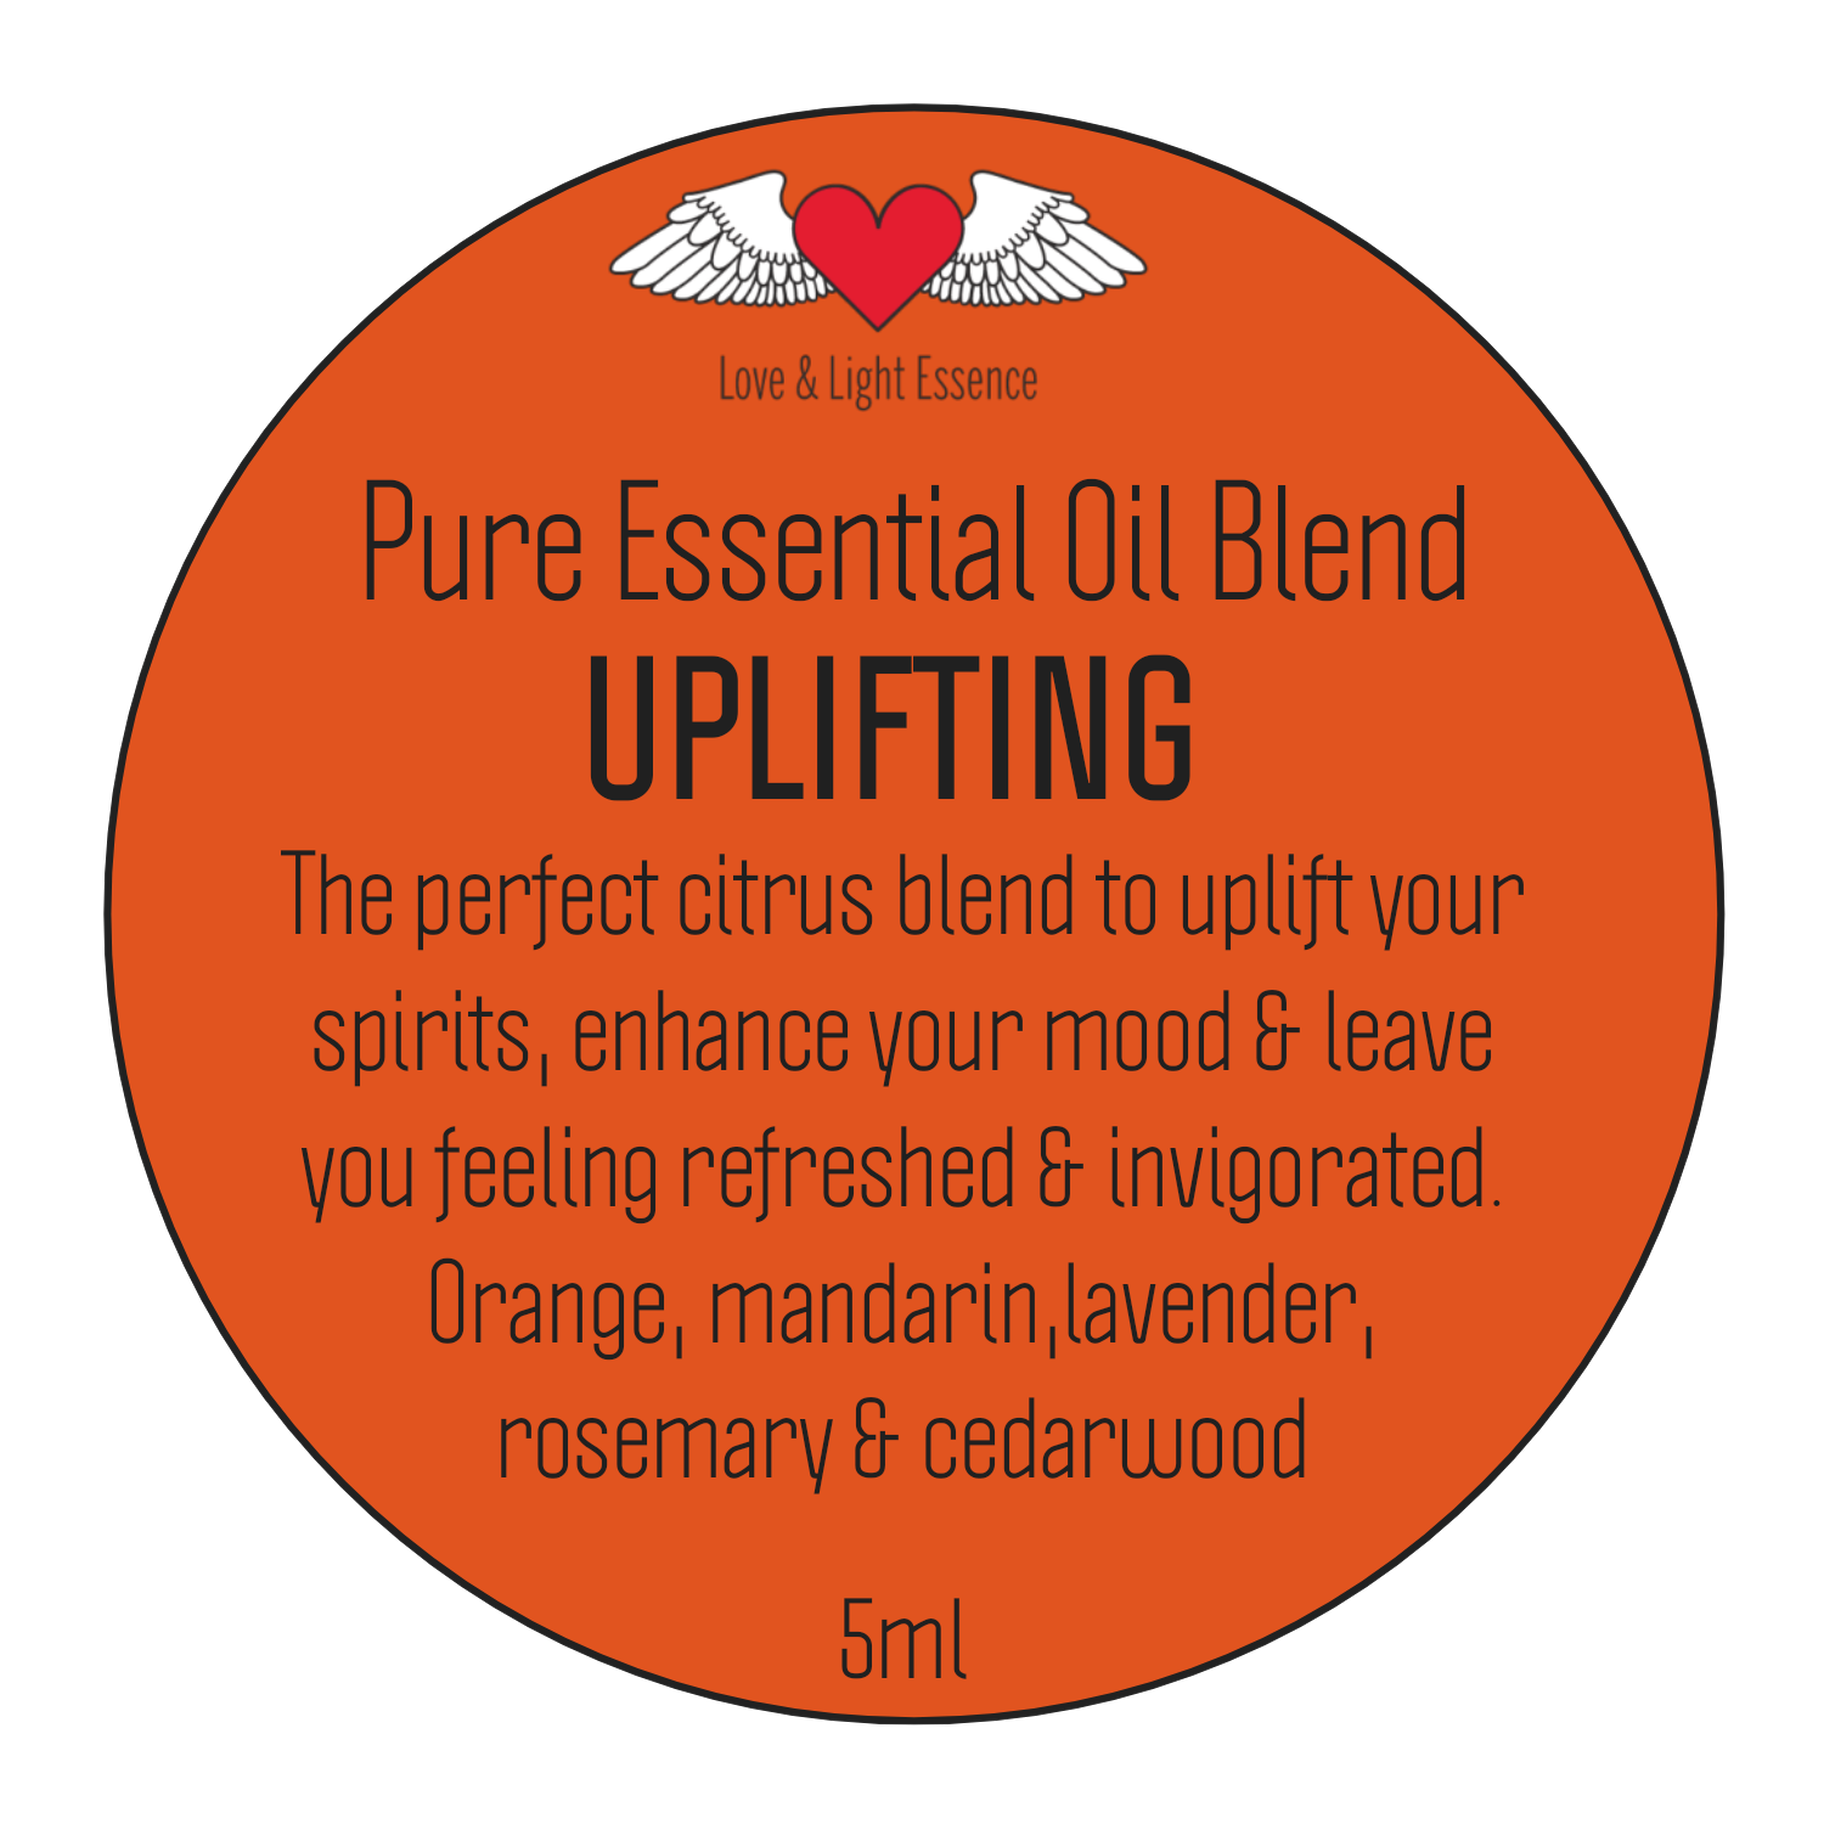 Pure Essential Oil Blend - UPLIFTING